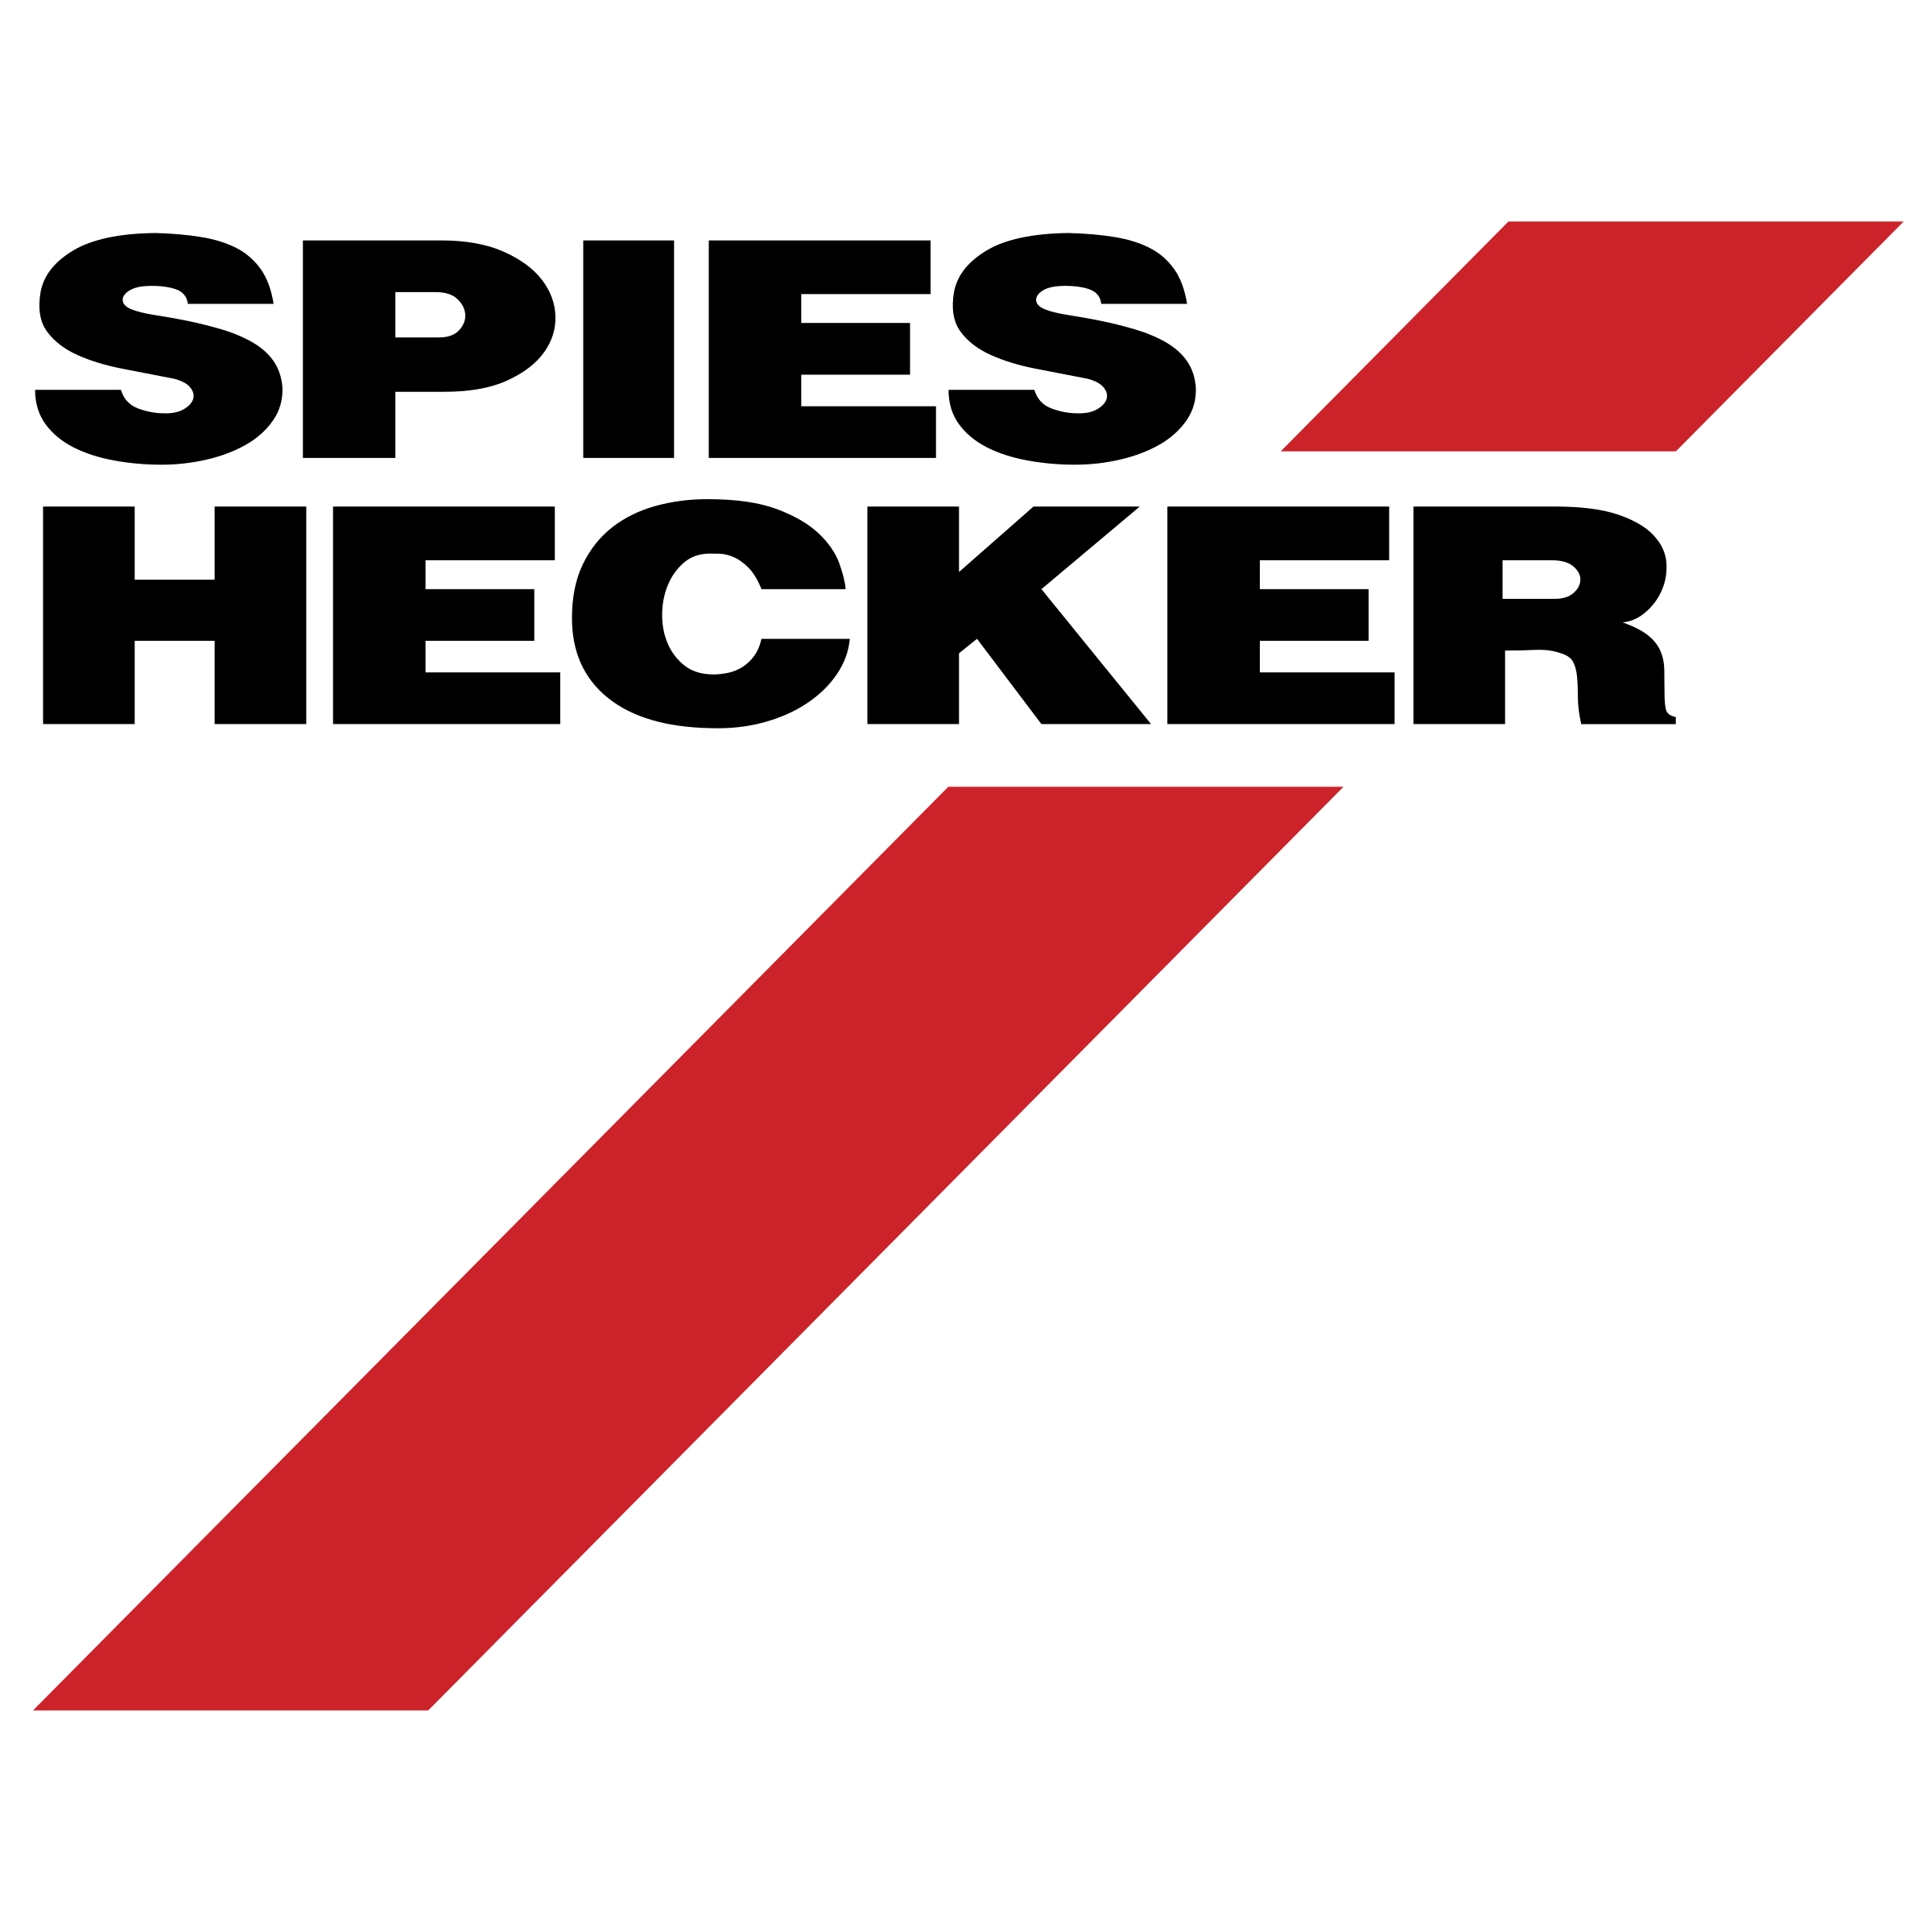 spies-hecker-logo-png-transparent